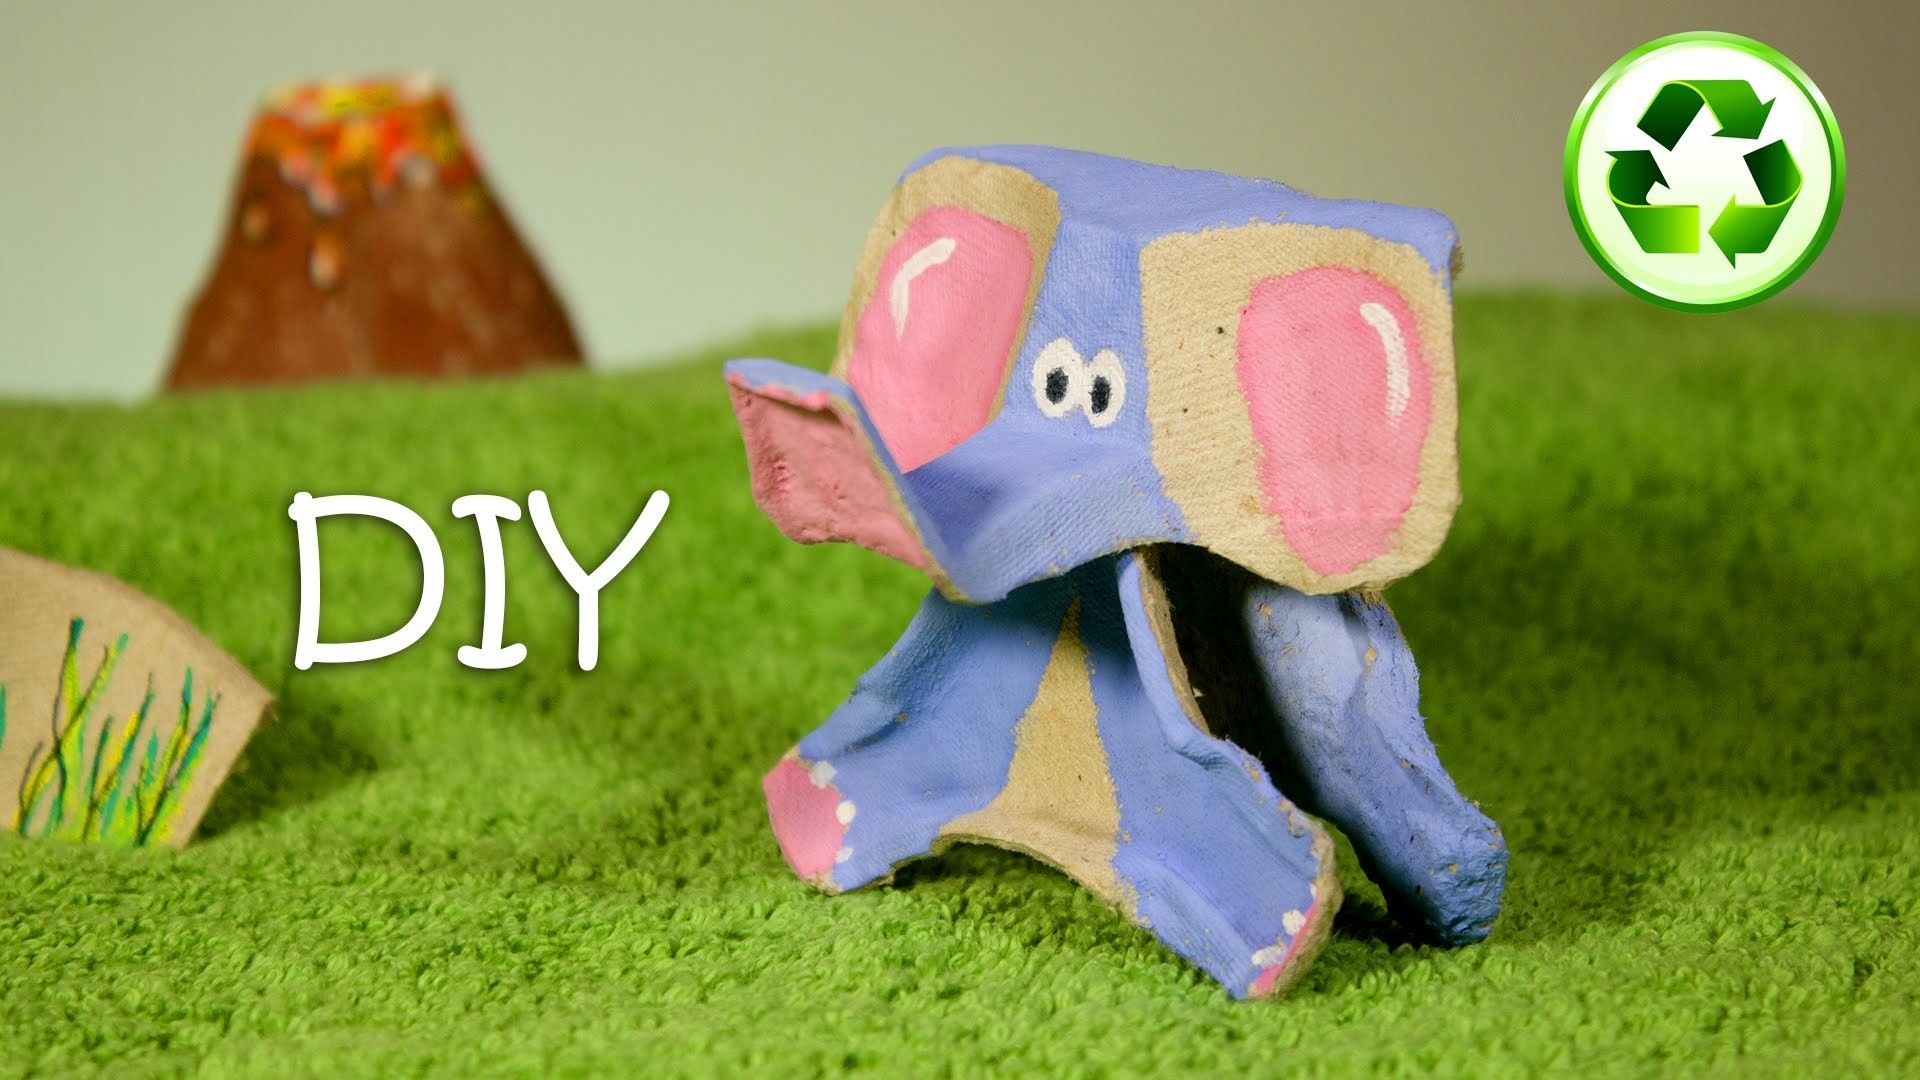 Diy elephant out of mcdonalds cardboard cup holder cup